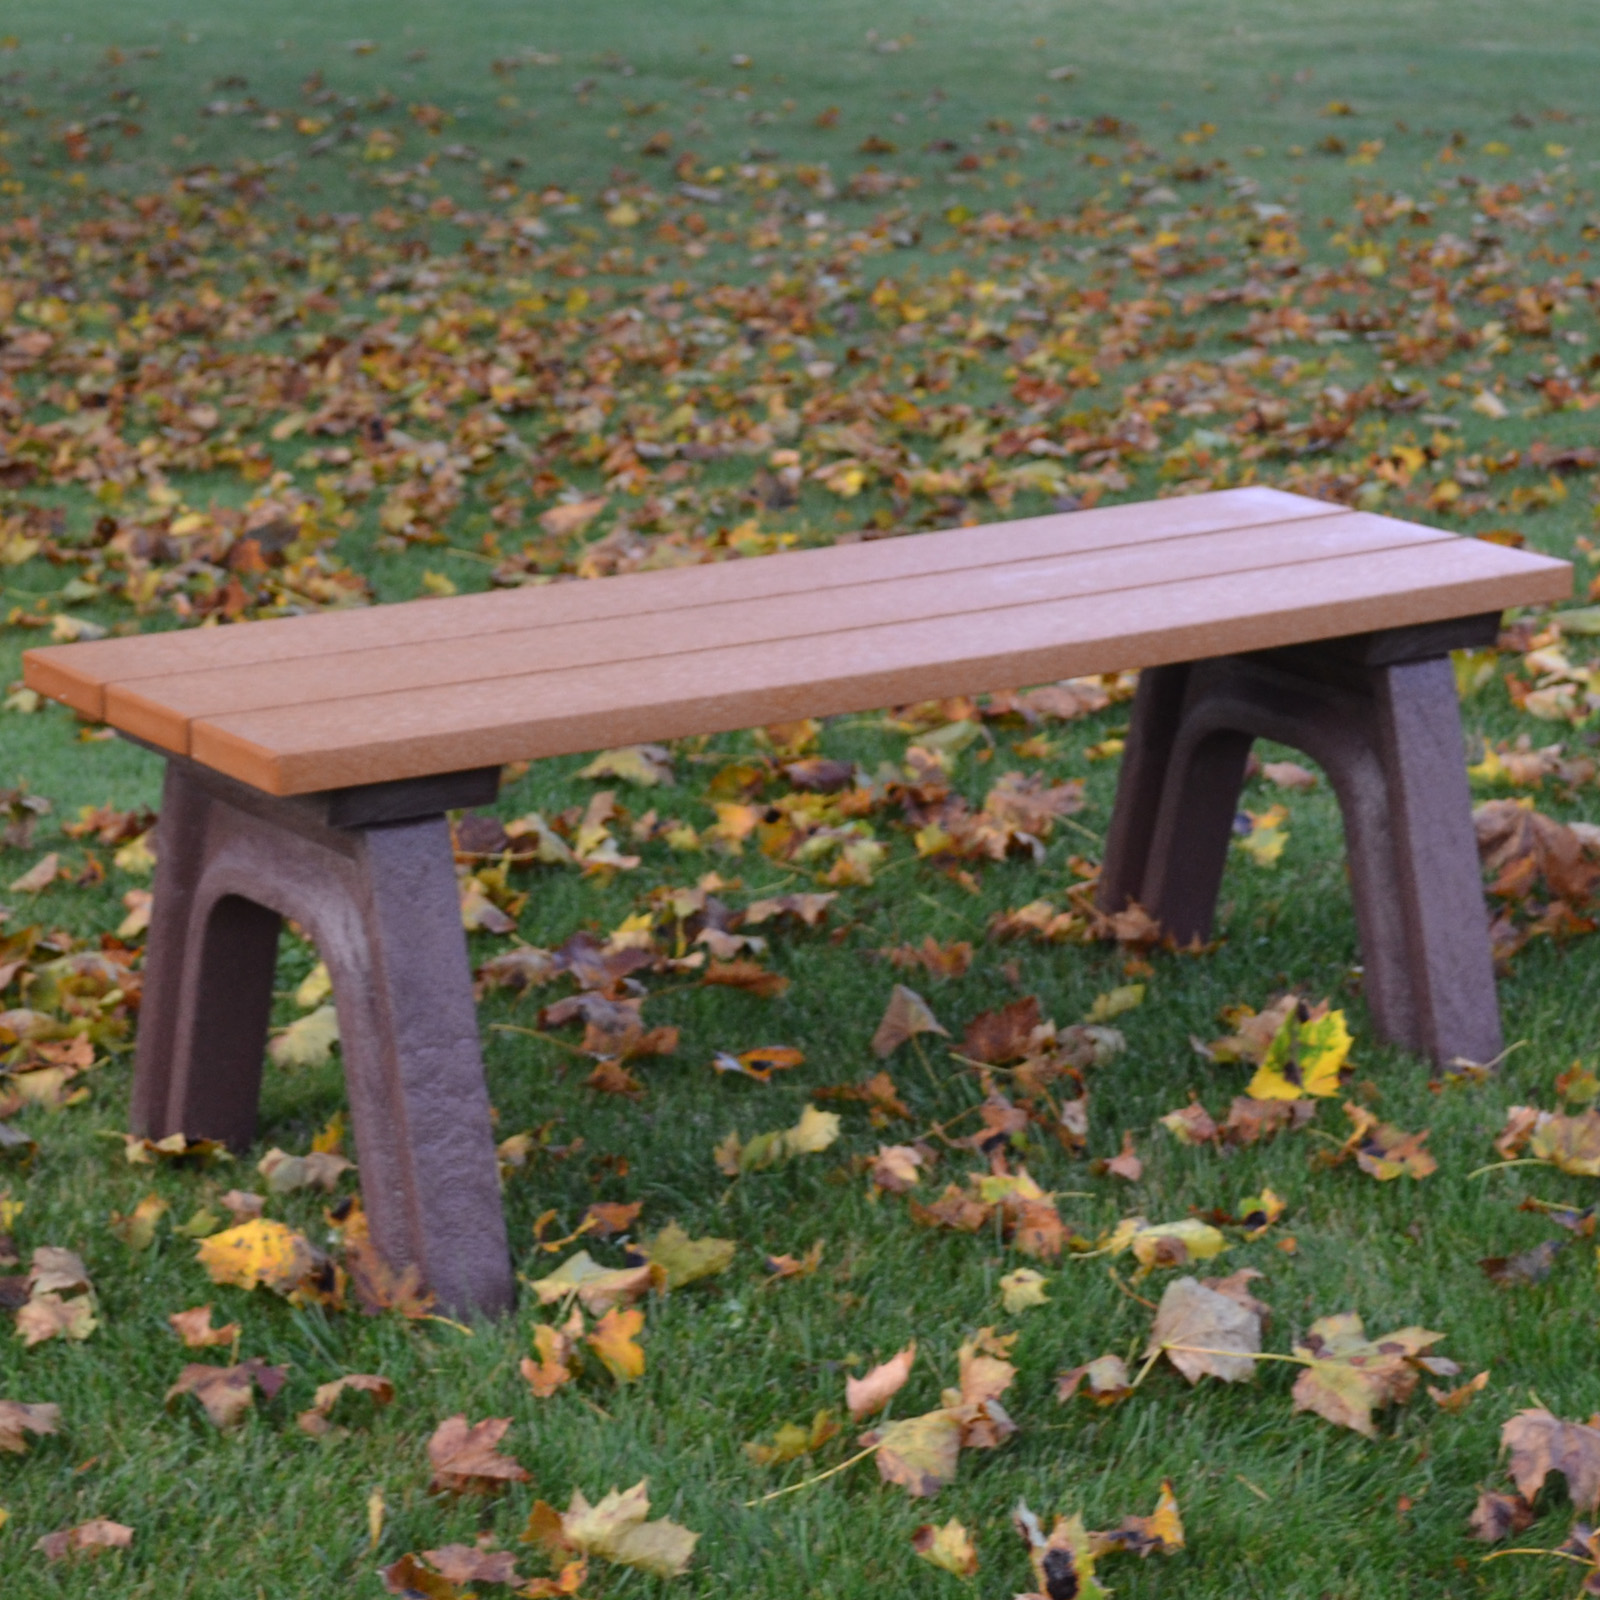 top memorial skookum bench benches plastic cremation ideas garden tables composite materials picnic of stone cat poly large recycled outdoor park memorials dog size concrete table